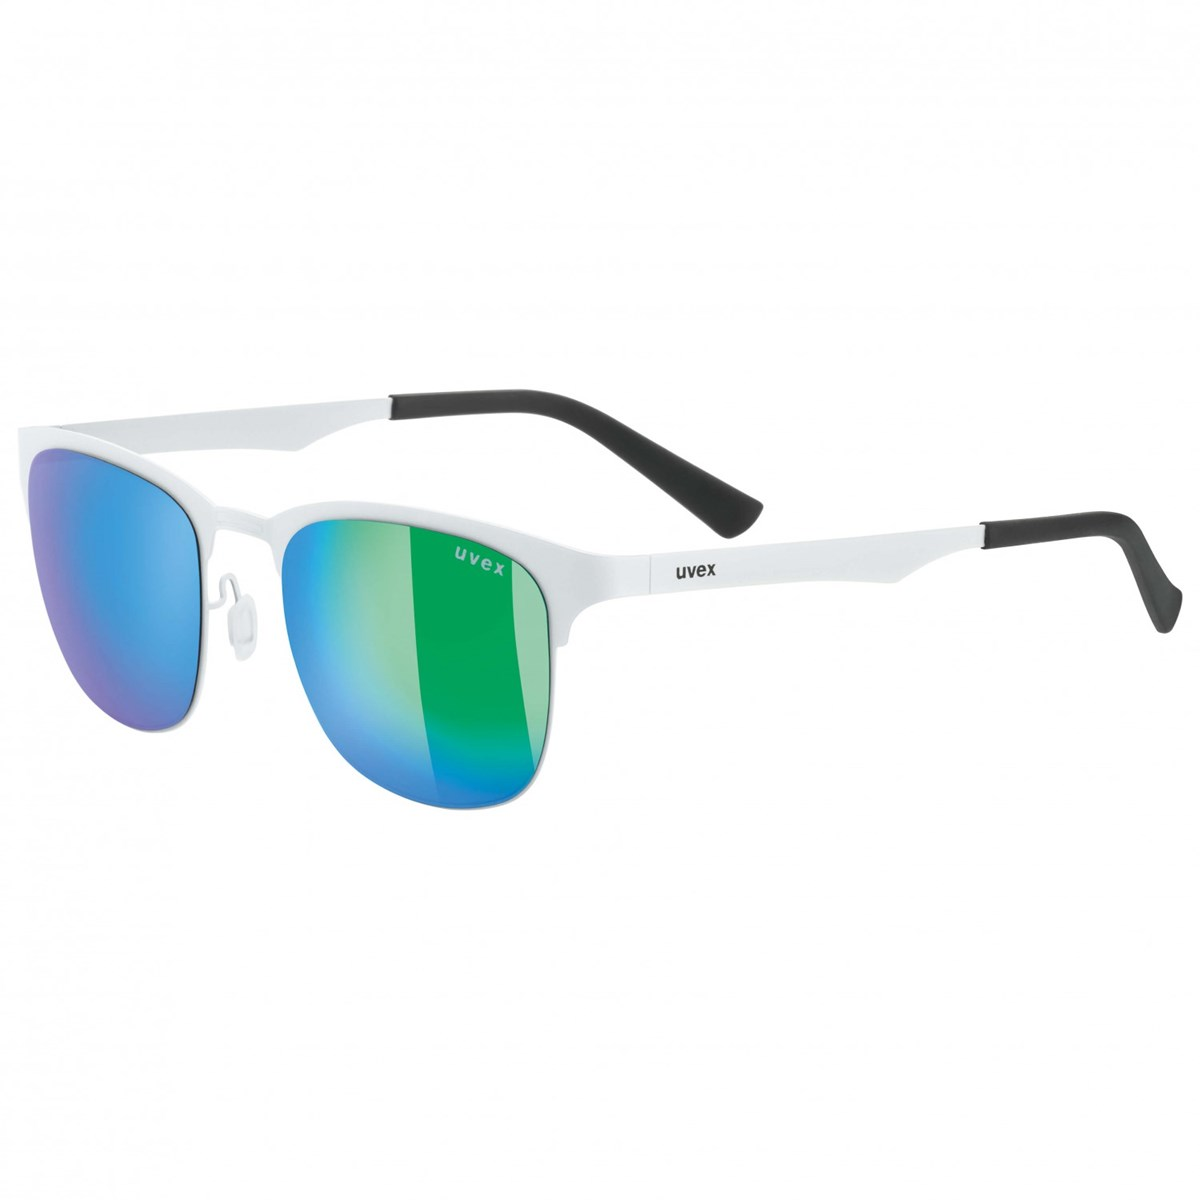 edb7d112f9a ... Sunglasses 2019 White  Mirror Green Lens. 0 (Be the first to add a  review!)